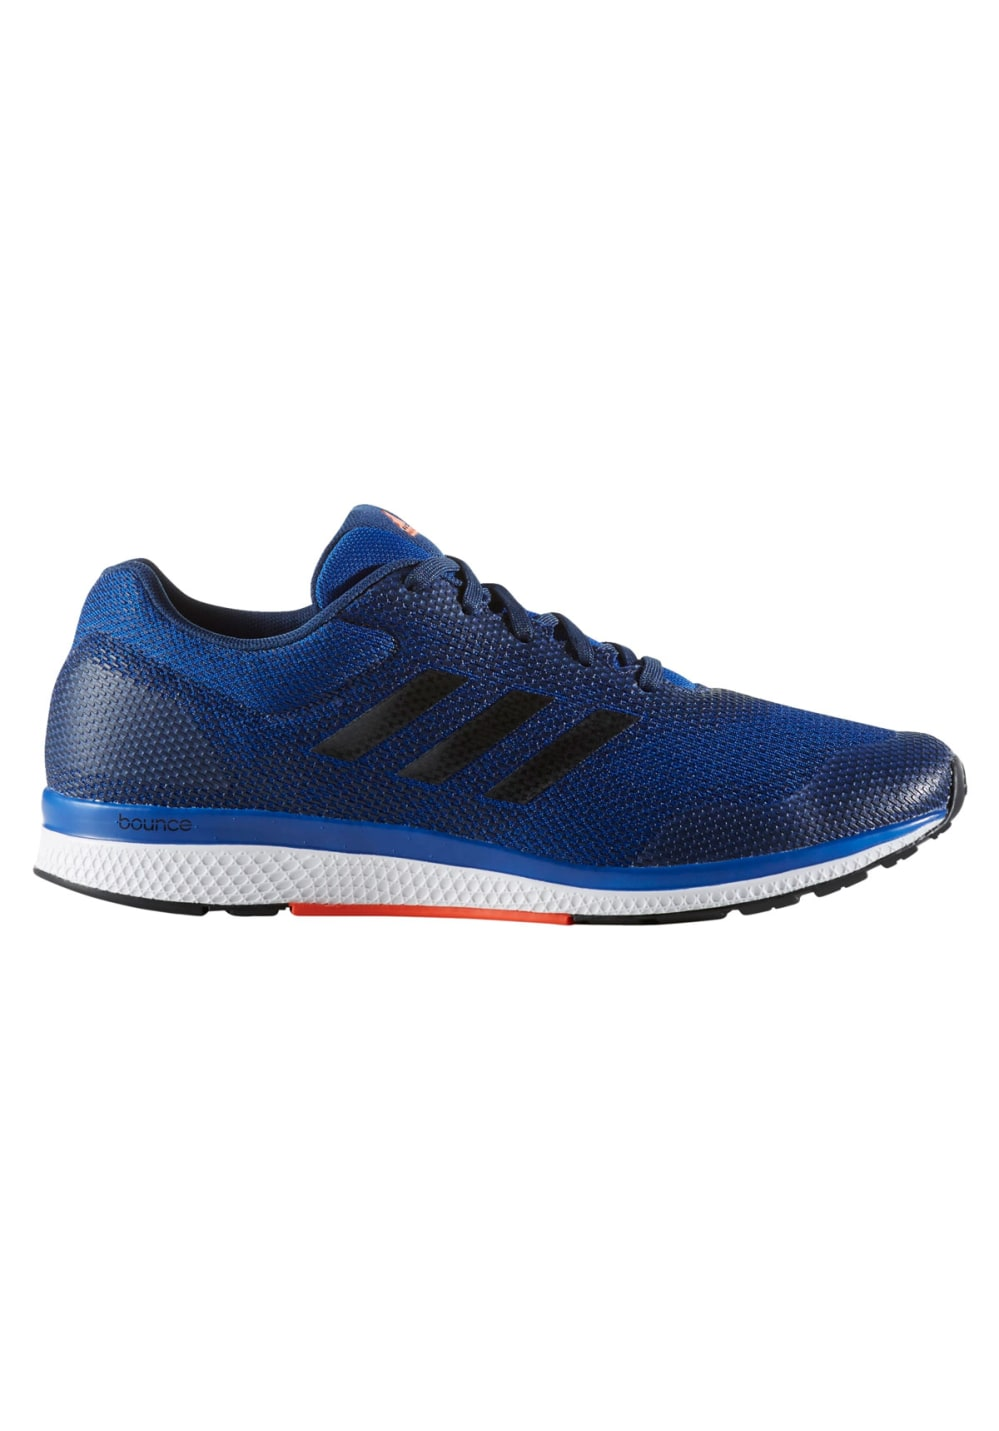 1a1d23228 ... adidas Mana Bounce 2 M Aramis - Running shoes for Men - Blue. Back to  Overview. -50%